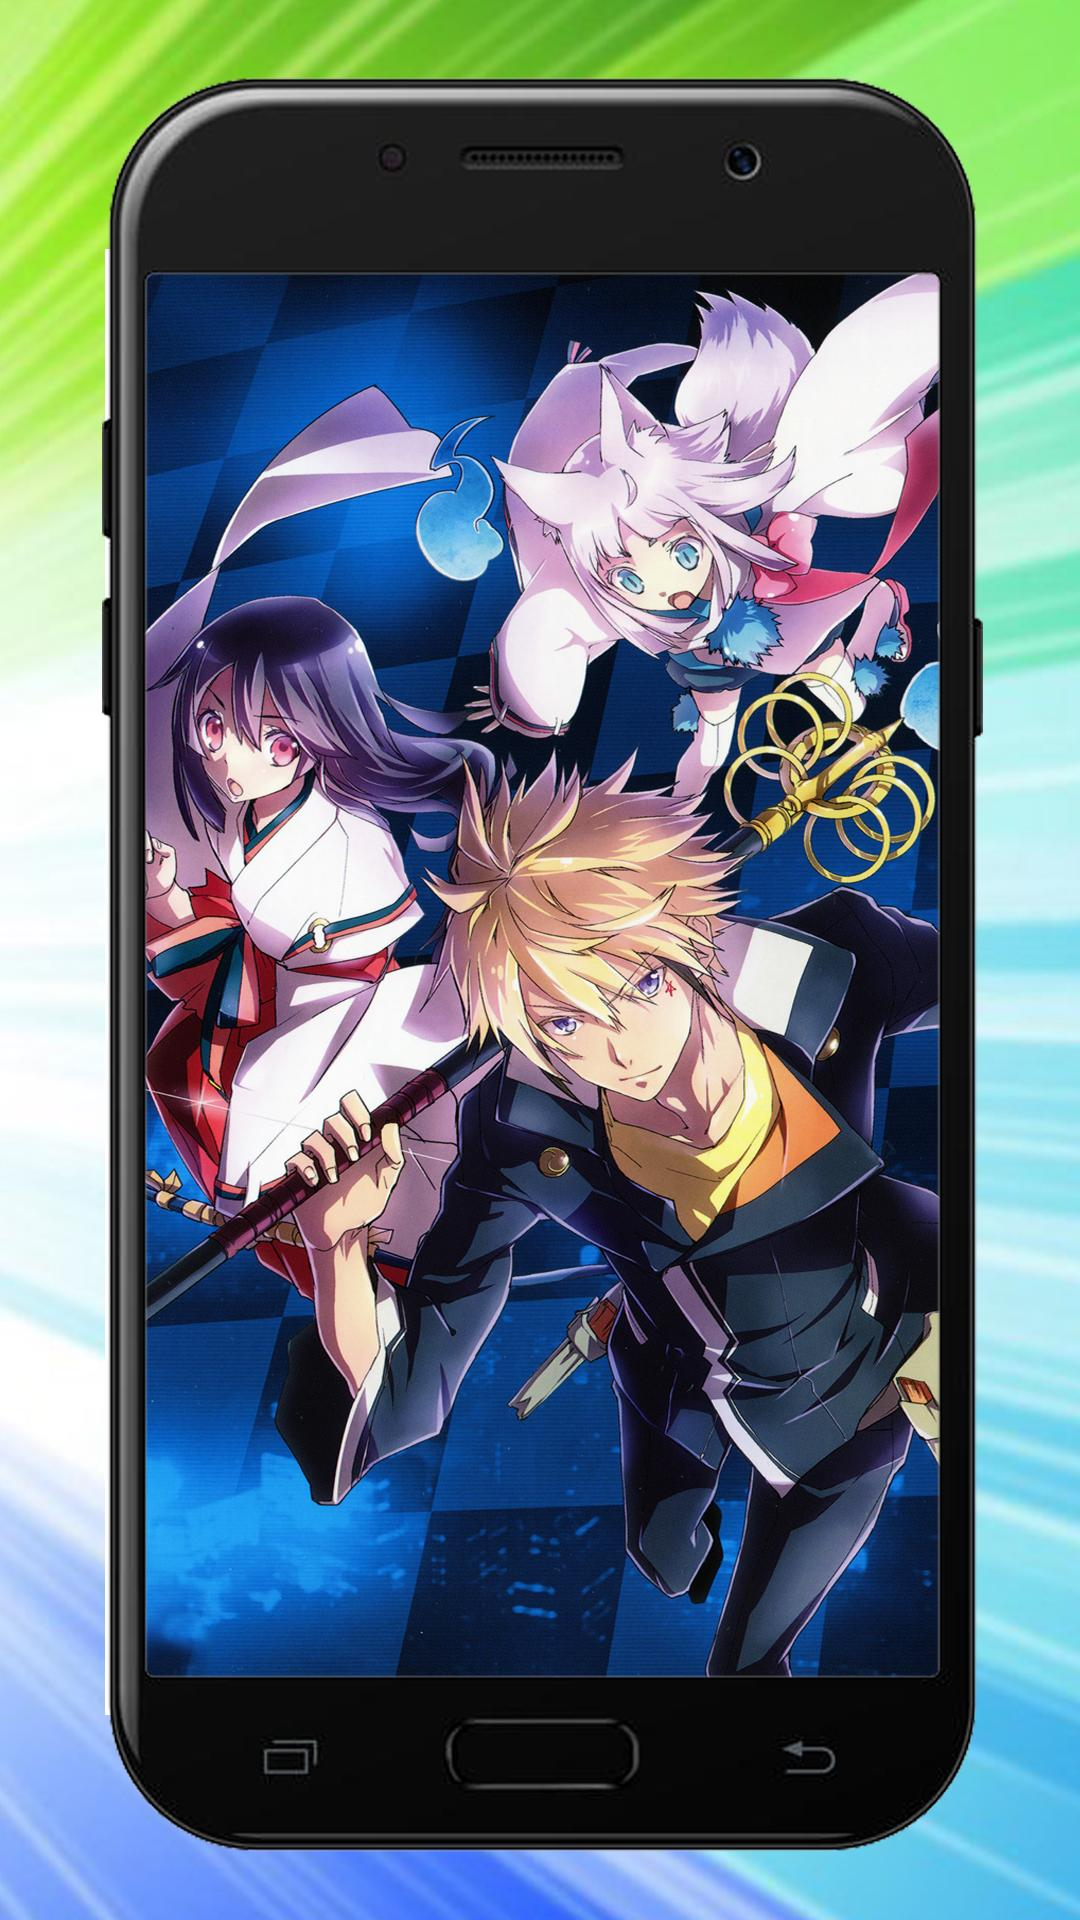 4k Anime Wallpaper For Android Apk Download